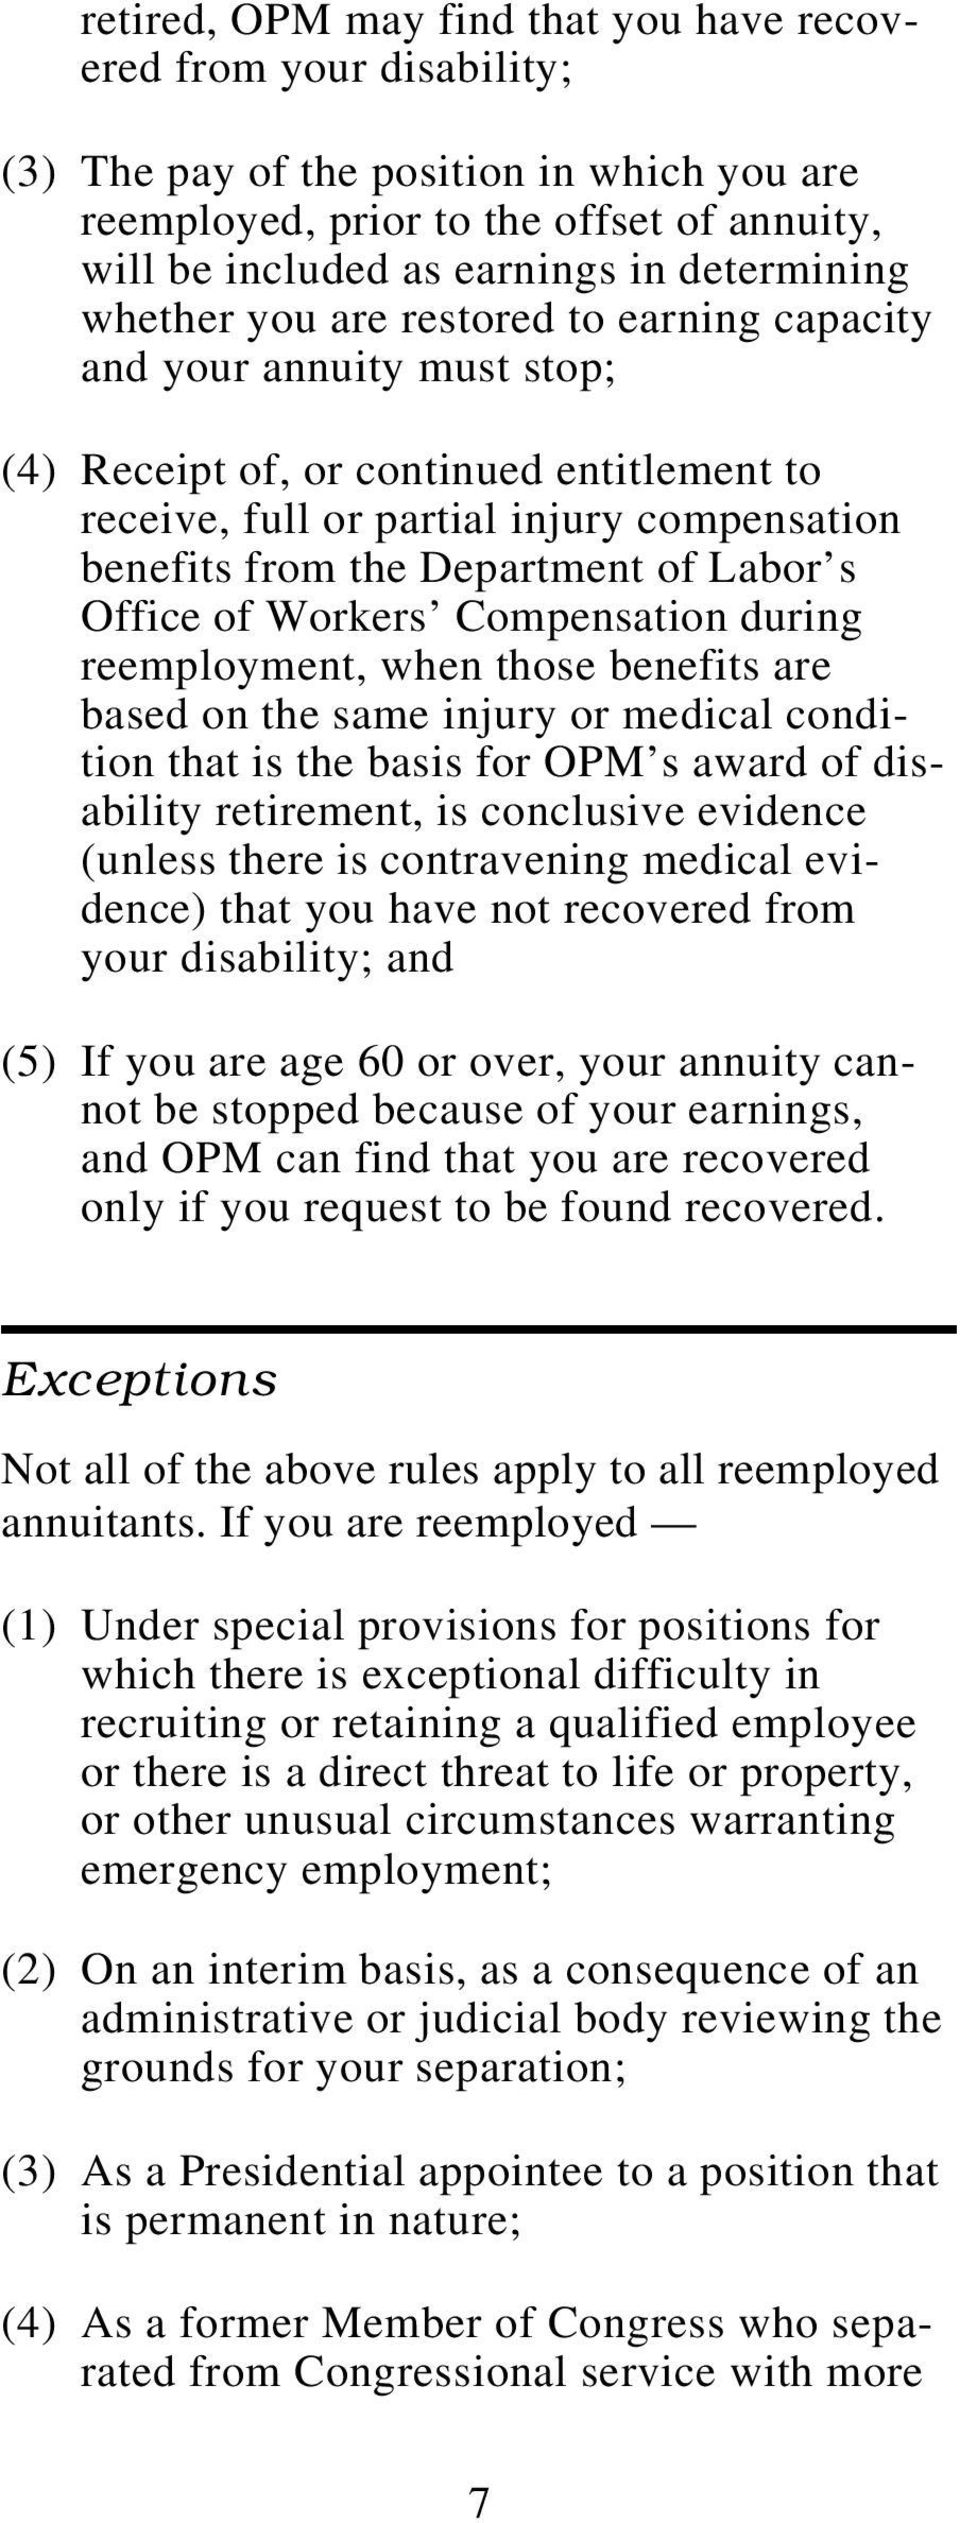 Department of Labor s Office of Workers Compensation during reemployment, when those benefits are based on the same injury or medical condition that is the basis for OPM s award of disability